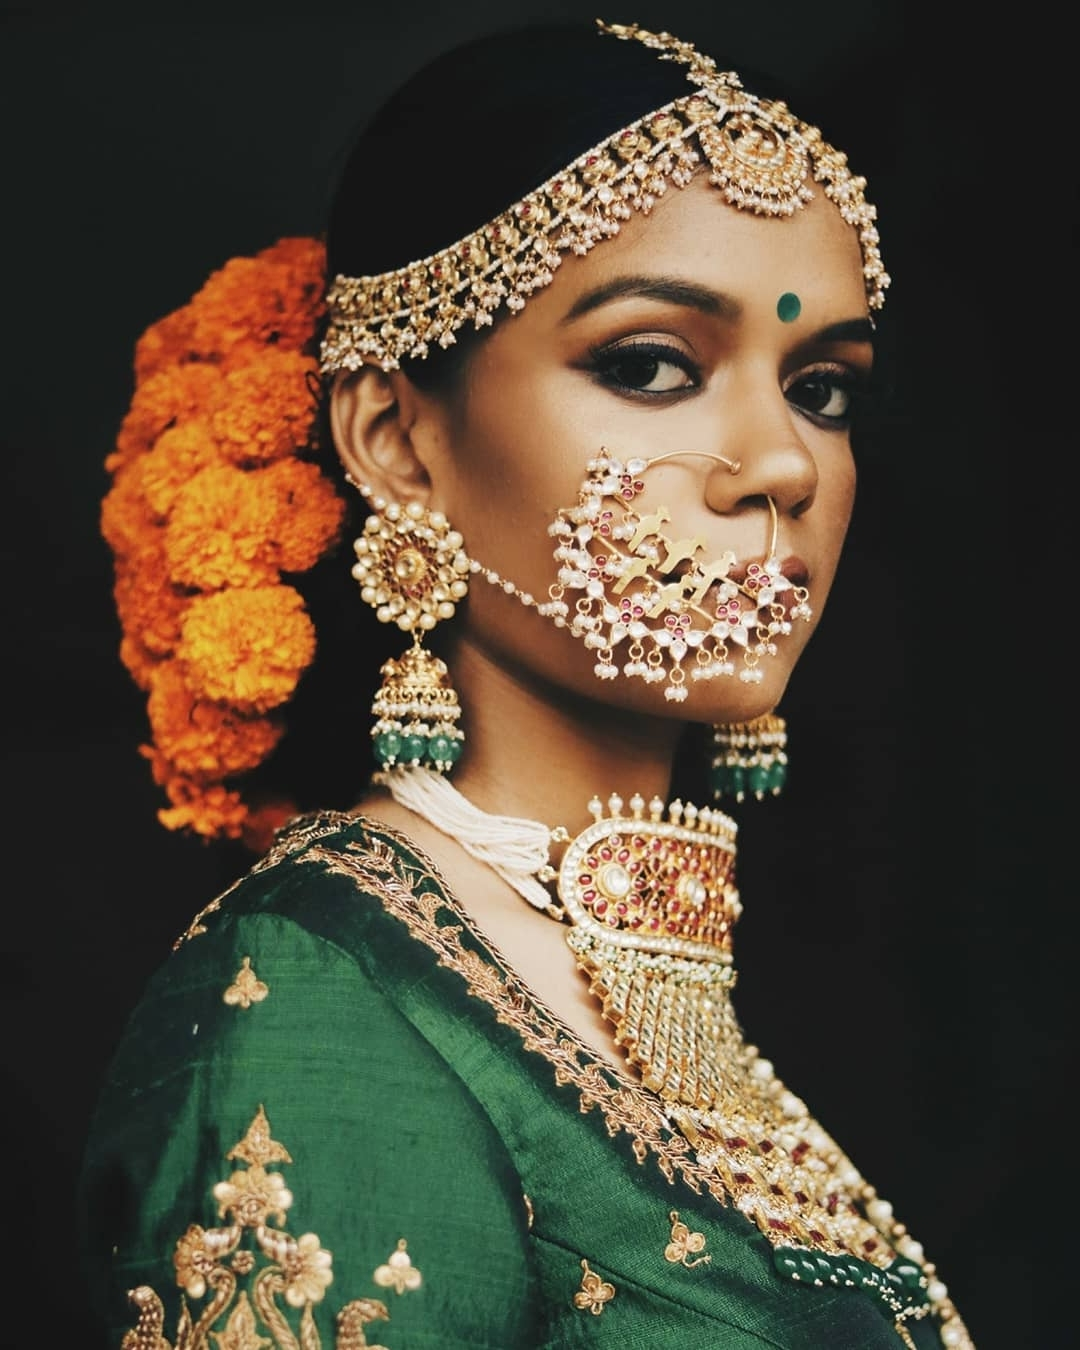 11 Hottest Indian Bridal Hairstyles To Make You Look Like A Diva At For Widely Used Indian Wedding Hairstyles (View 1 of 15)